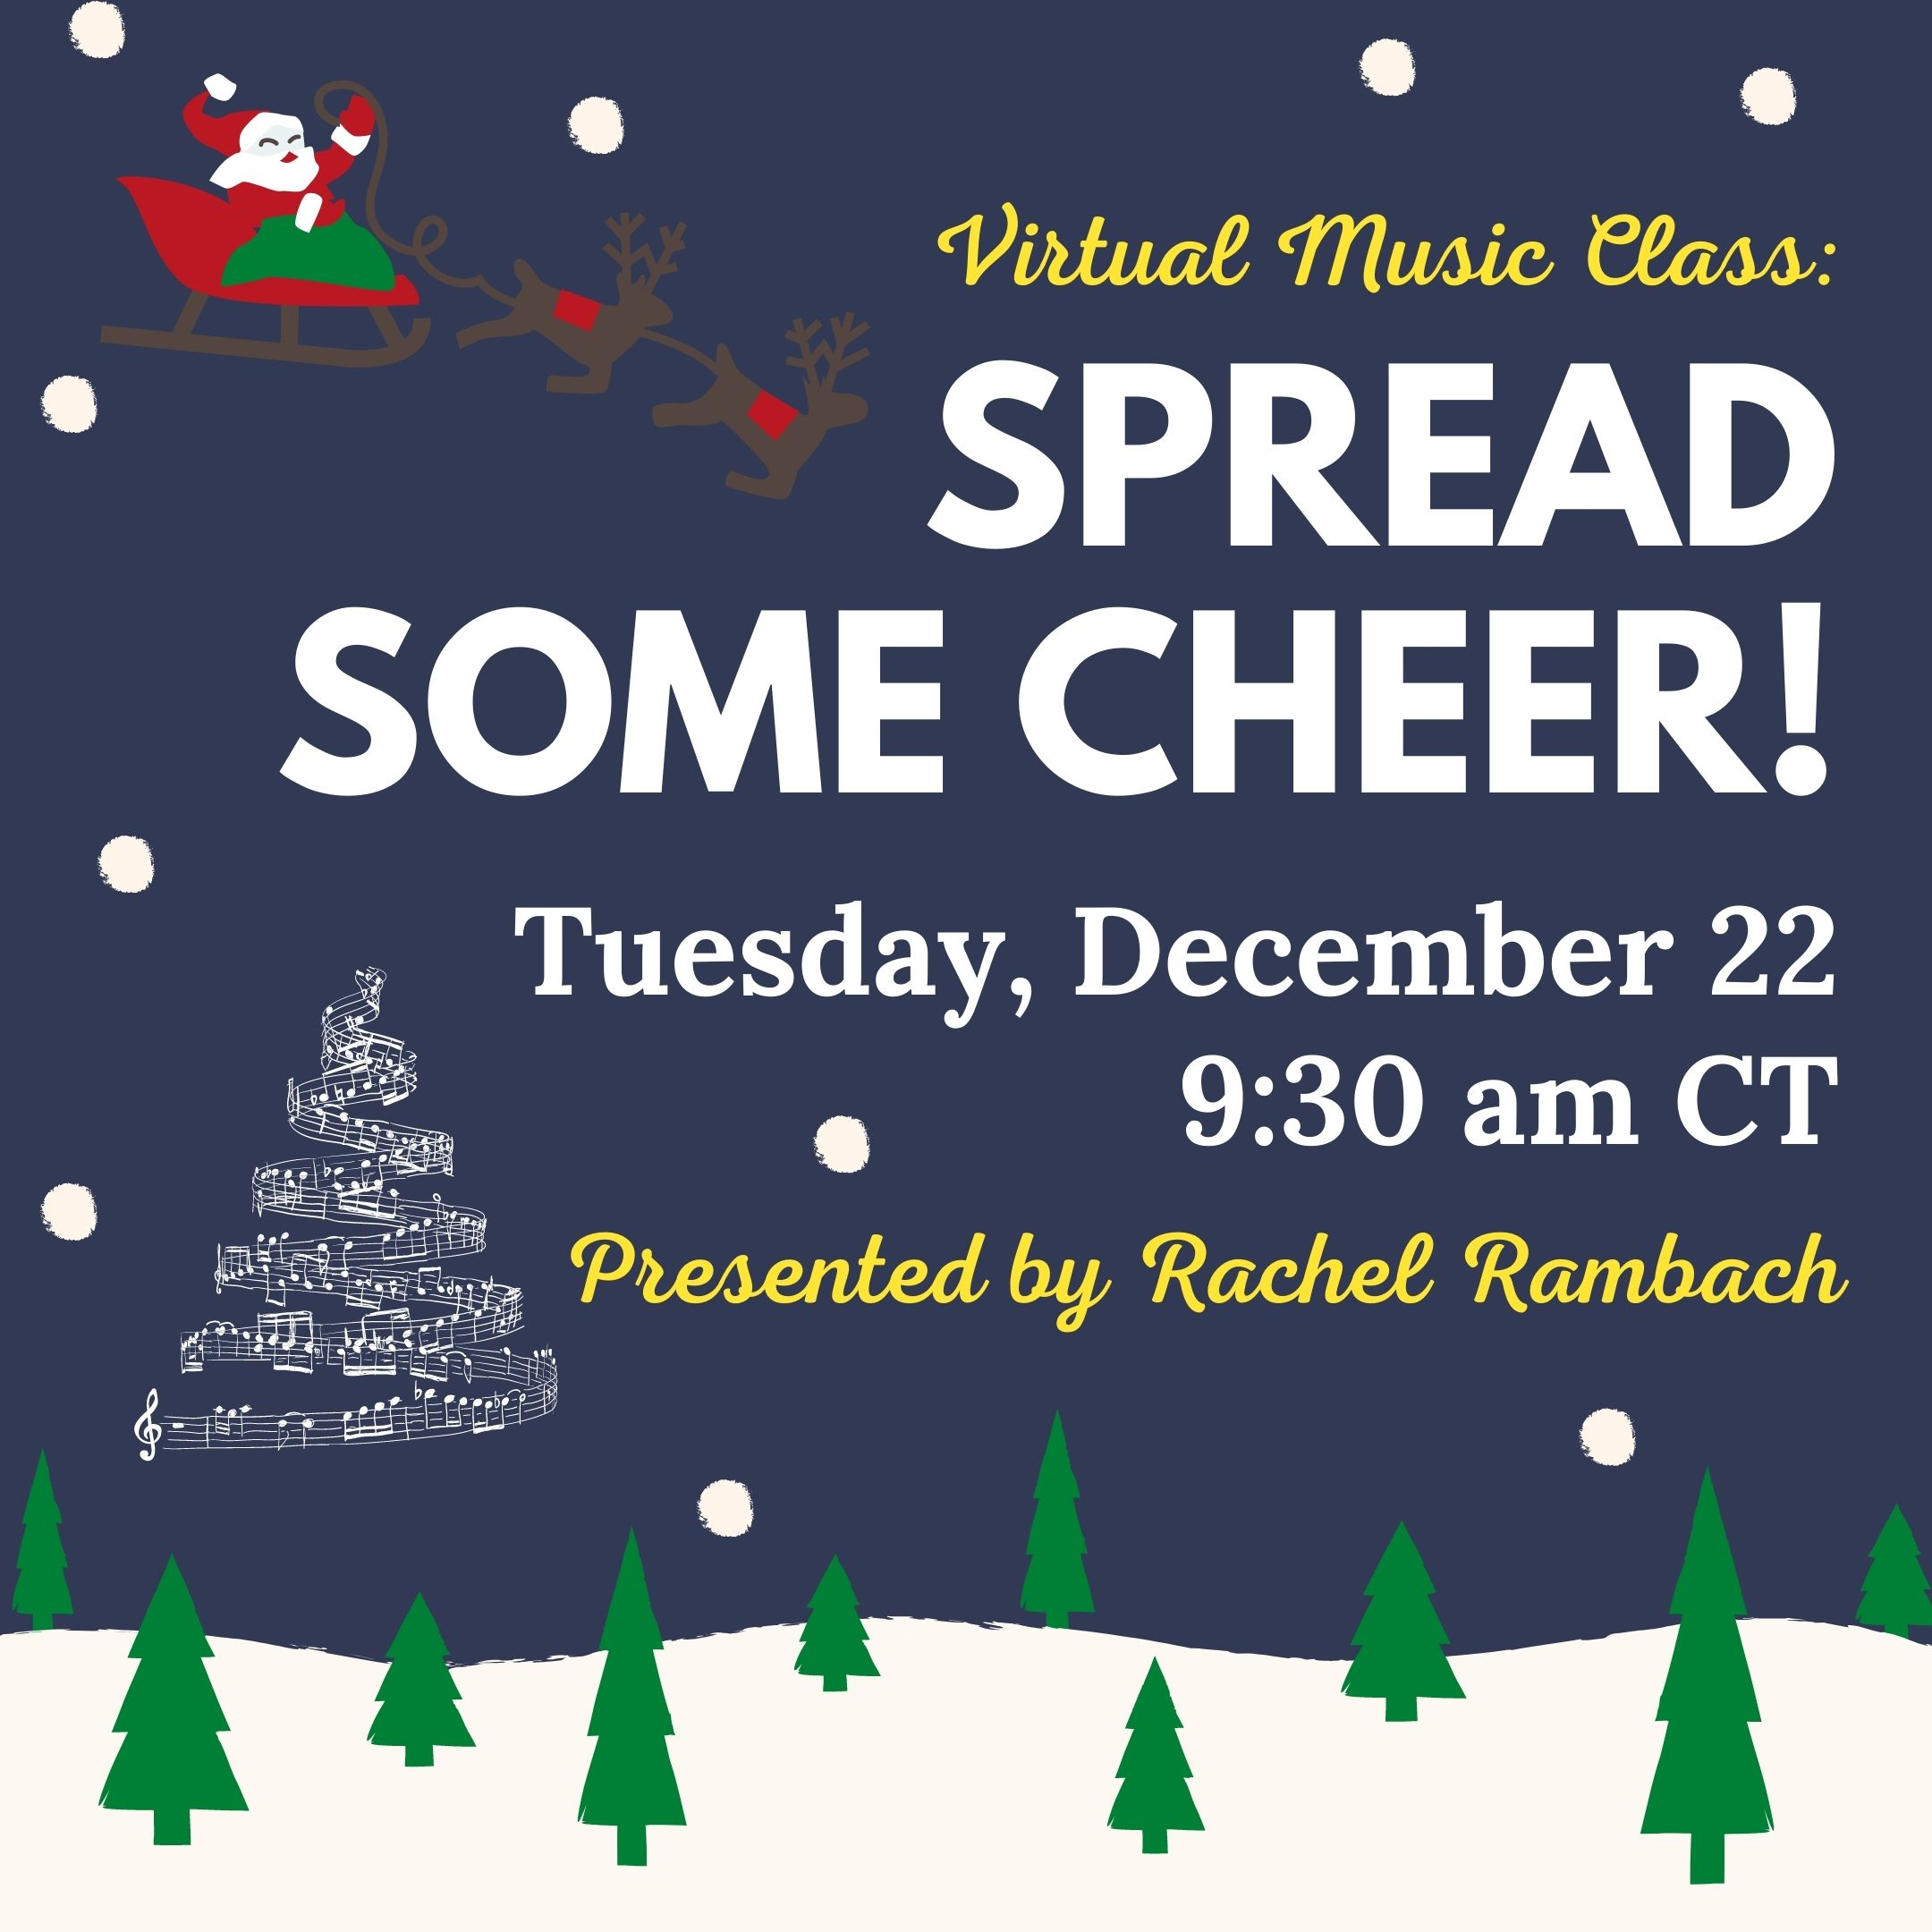 Virtual Music Class - Spread Some Cheer